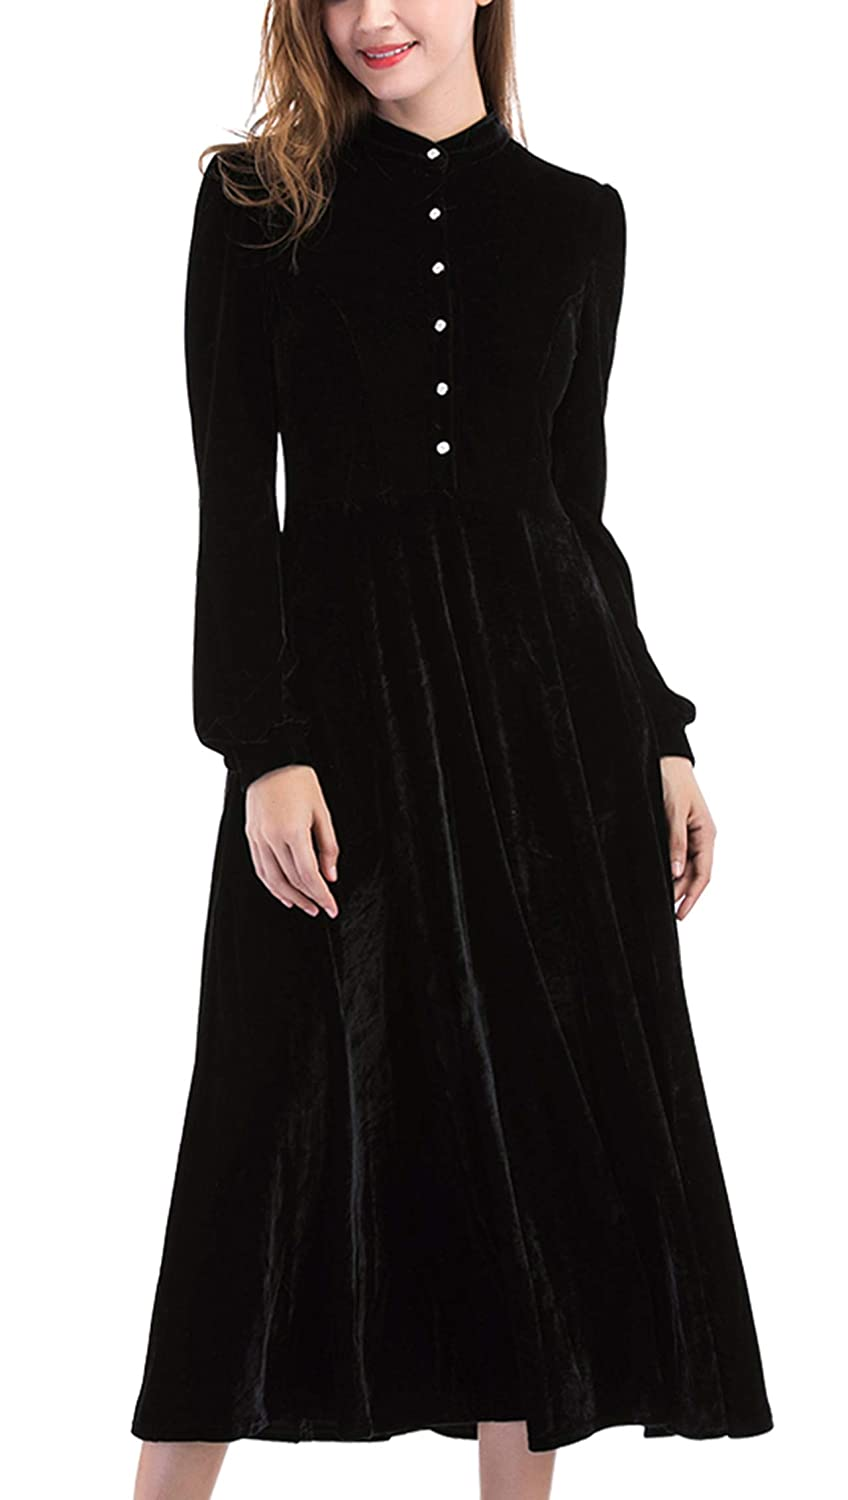 Old Fashioned Dresses | Old Dress Styles Ayliss Women Velvet Maxi Dress Peter Pan Collar Long Sleeve Swing Dress $29.99 AT vintagedancer.com